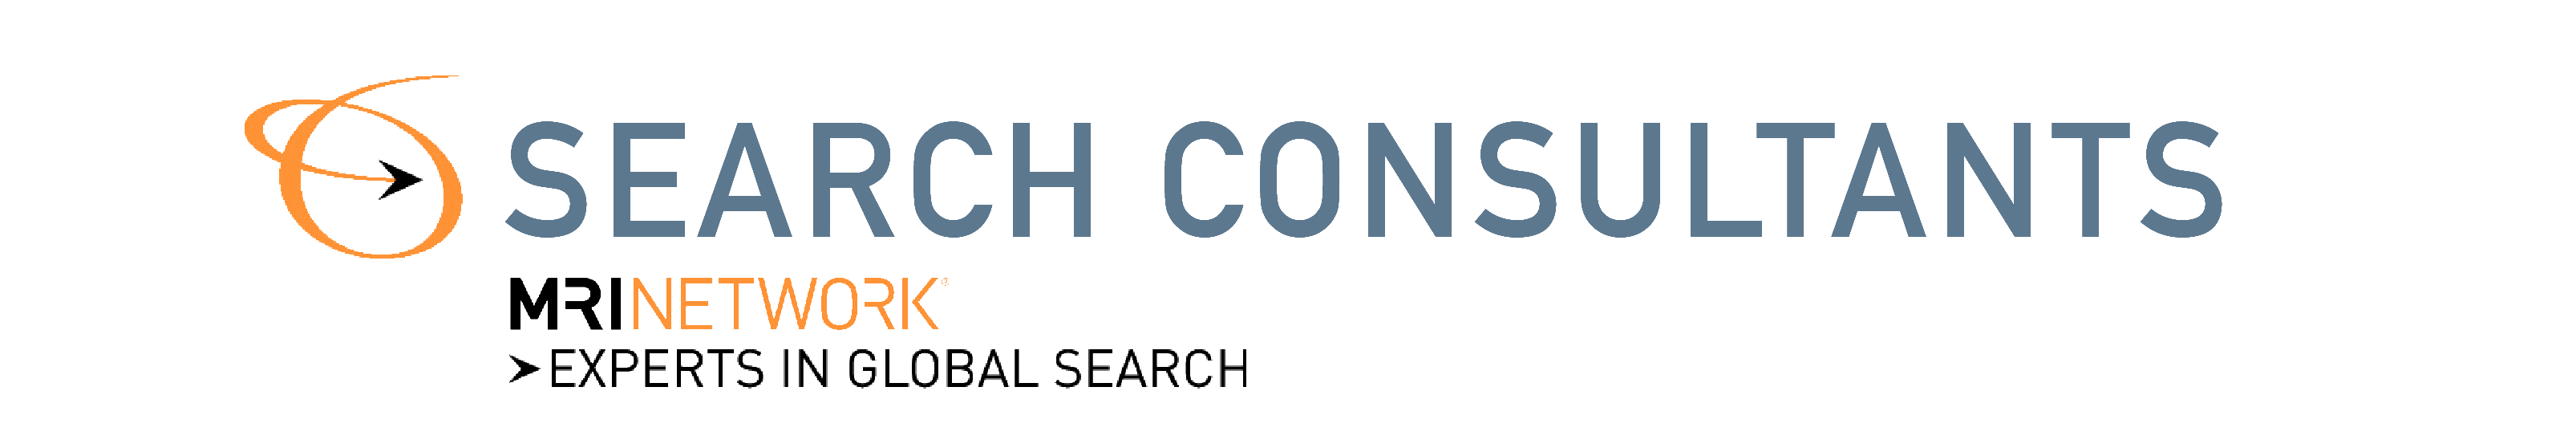 Search Consultants